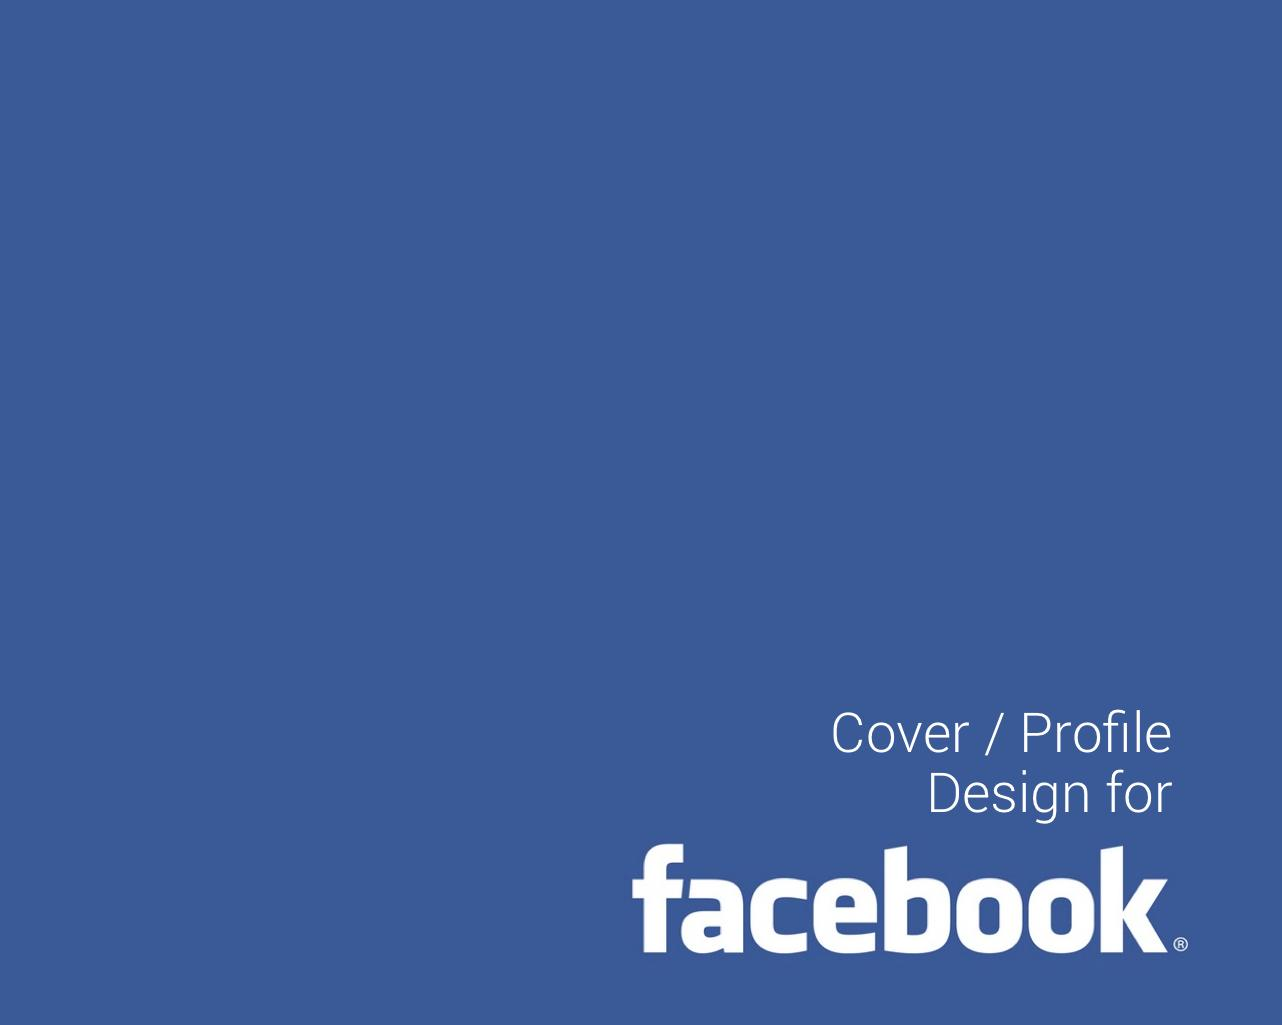 Custom Facebook Profile/Cover Design by eddienewman - 101266